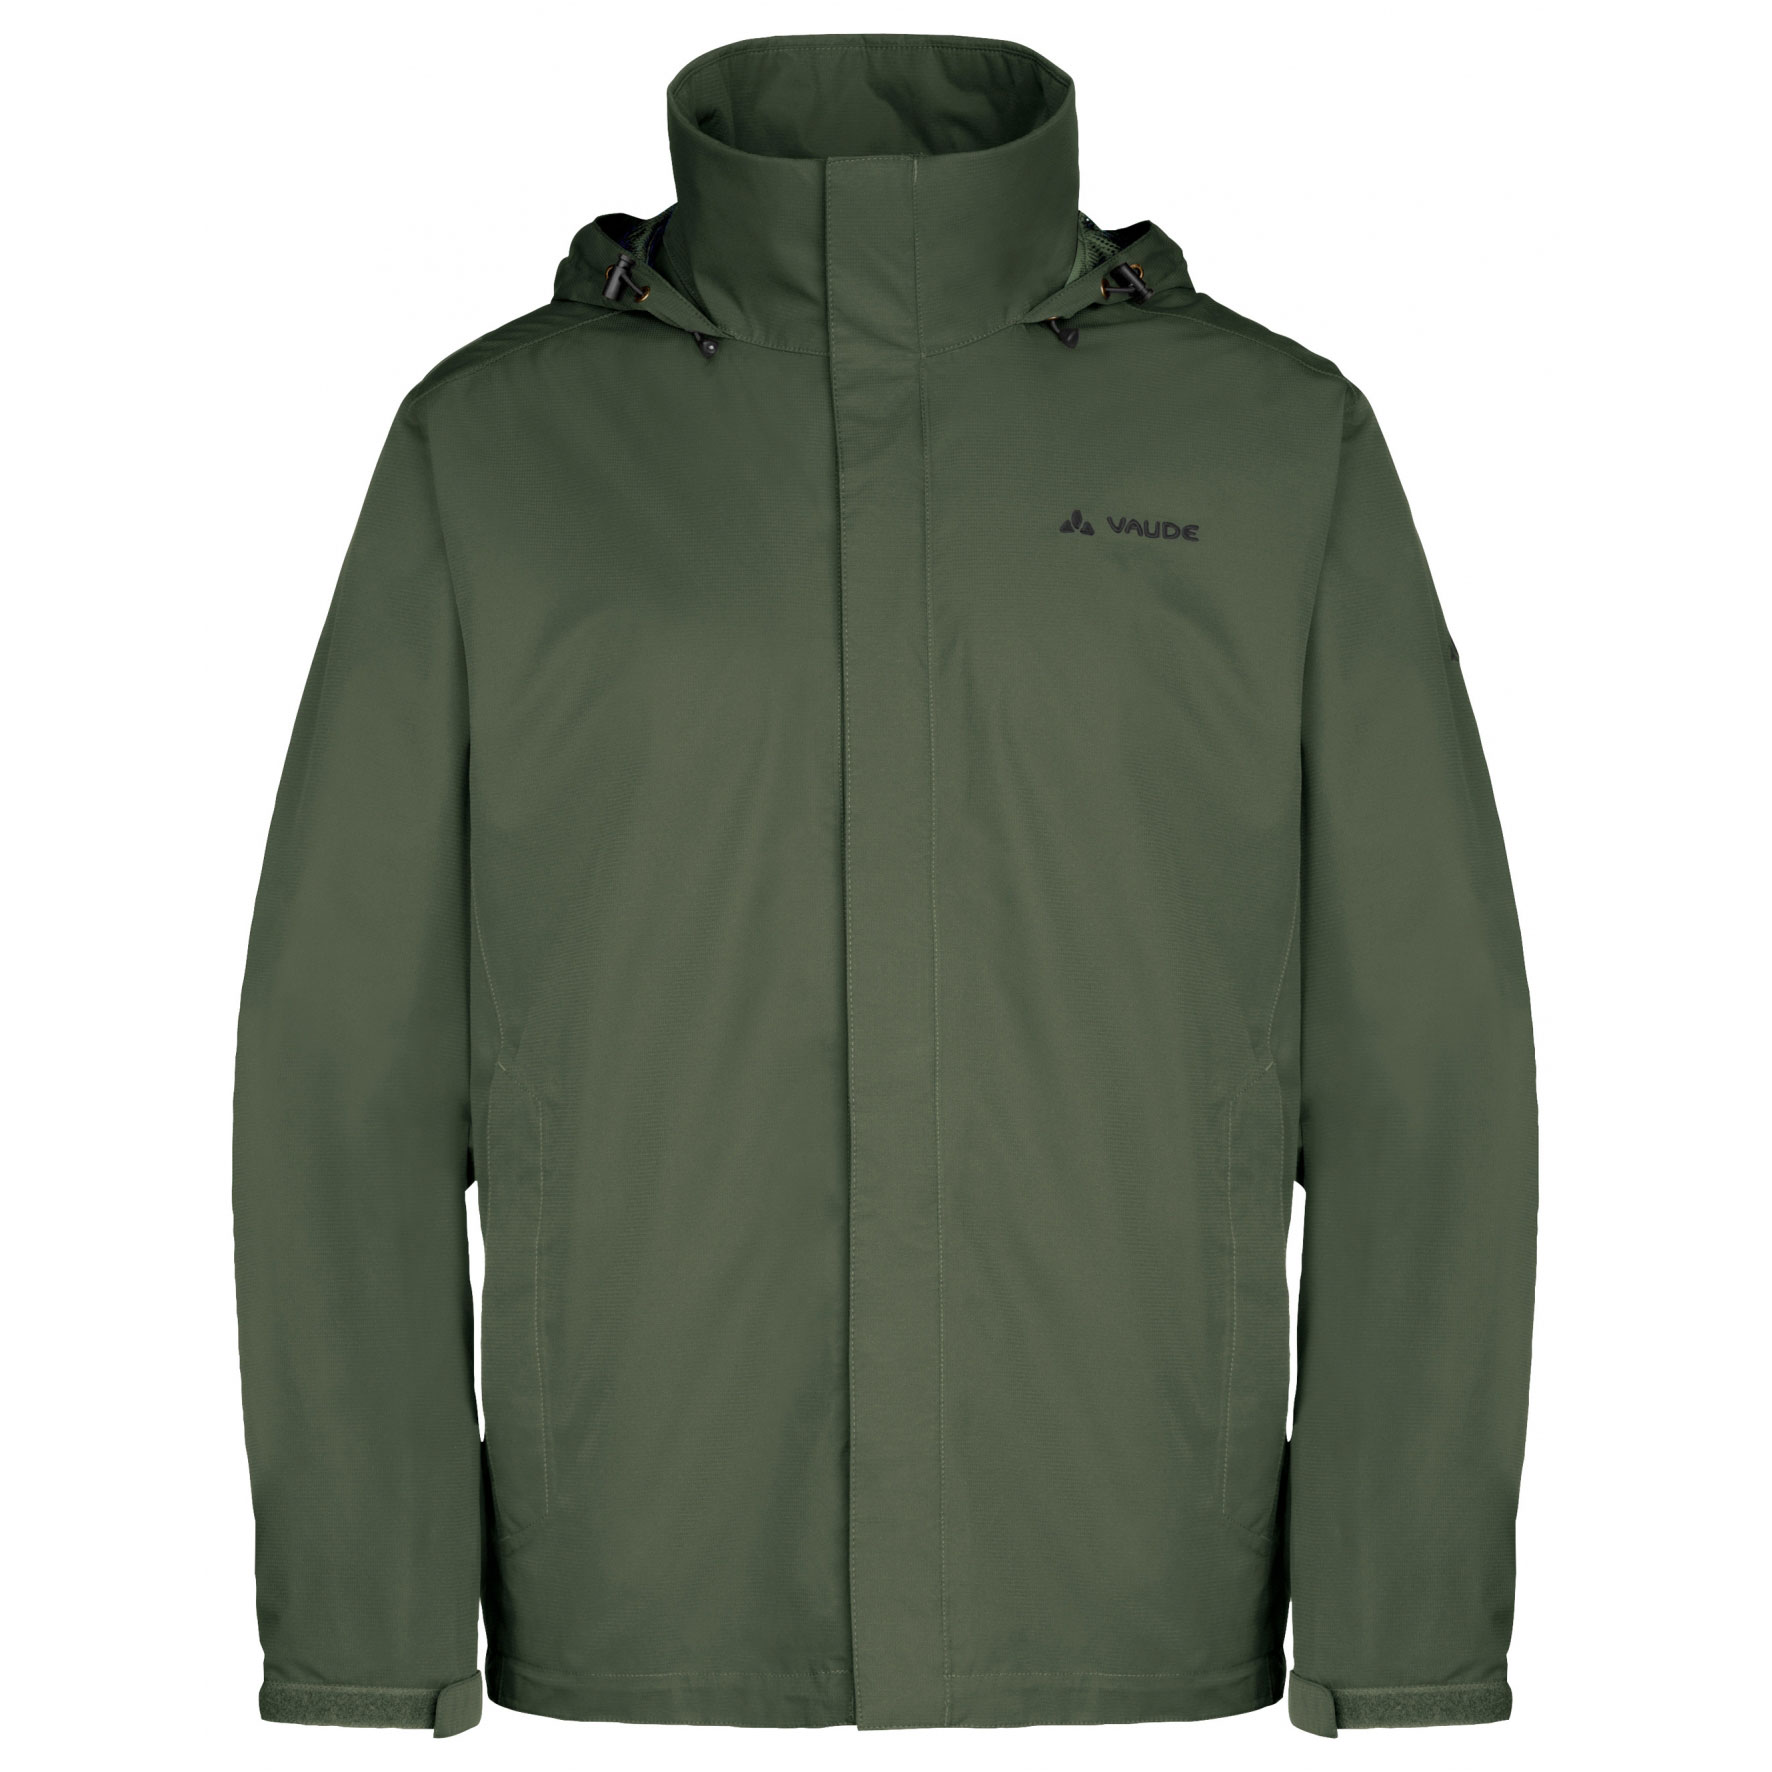 Vaude Herren Jacke Escape Light 04341-673 XXL